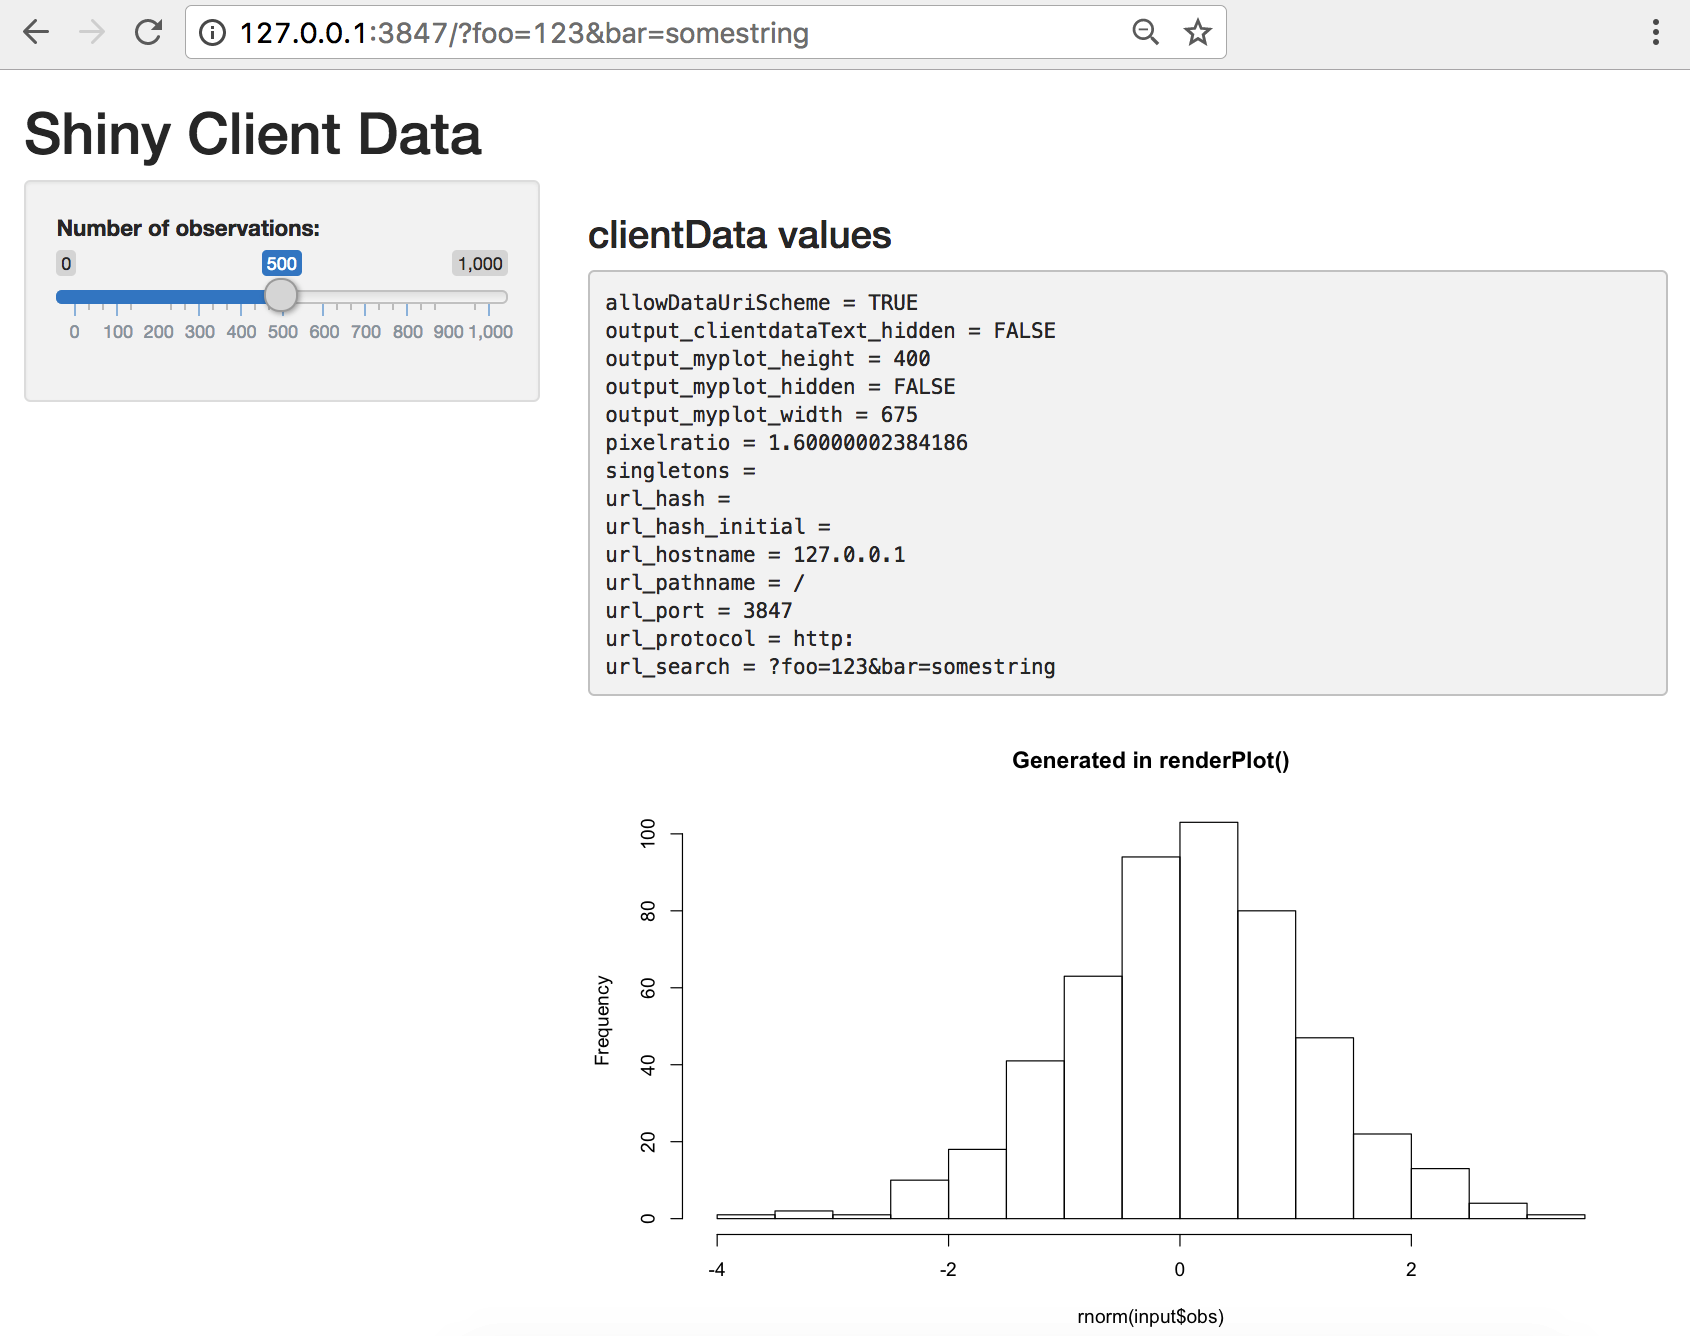 Shiny - Learn about your user with session$clientData